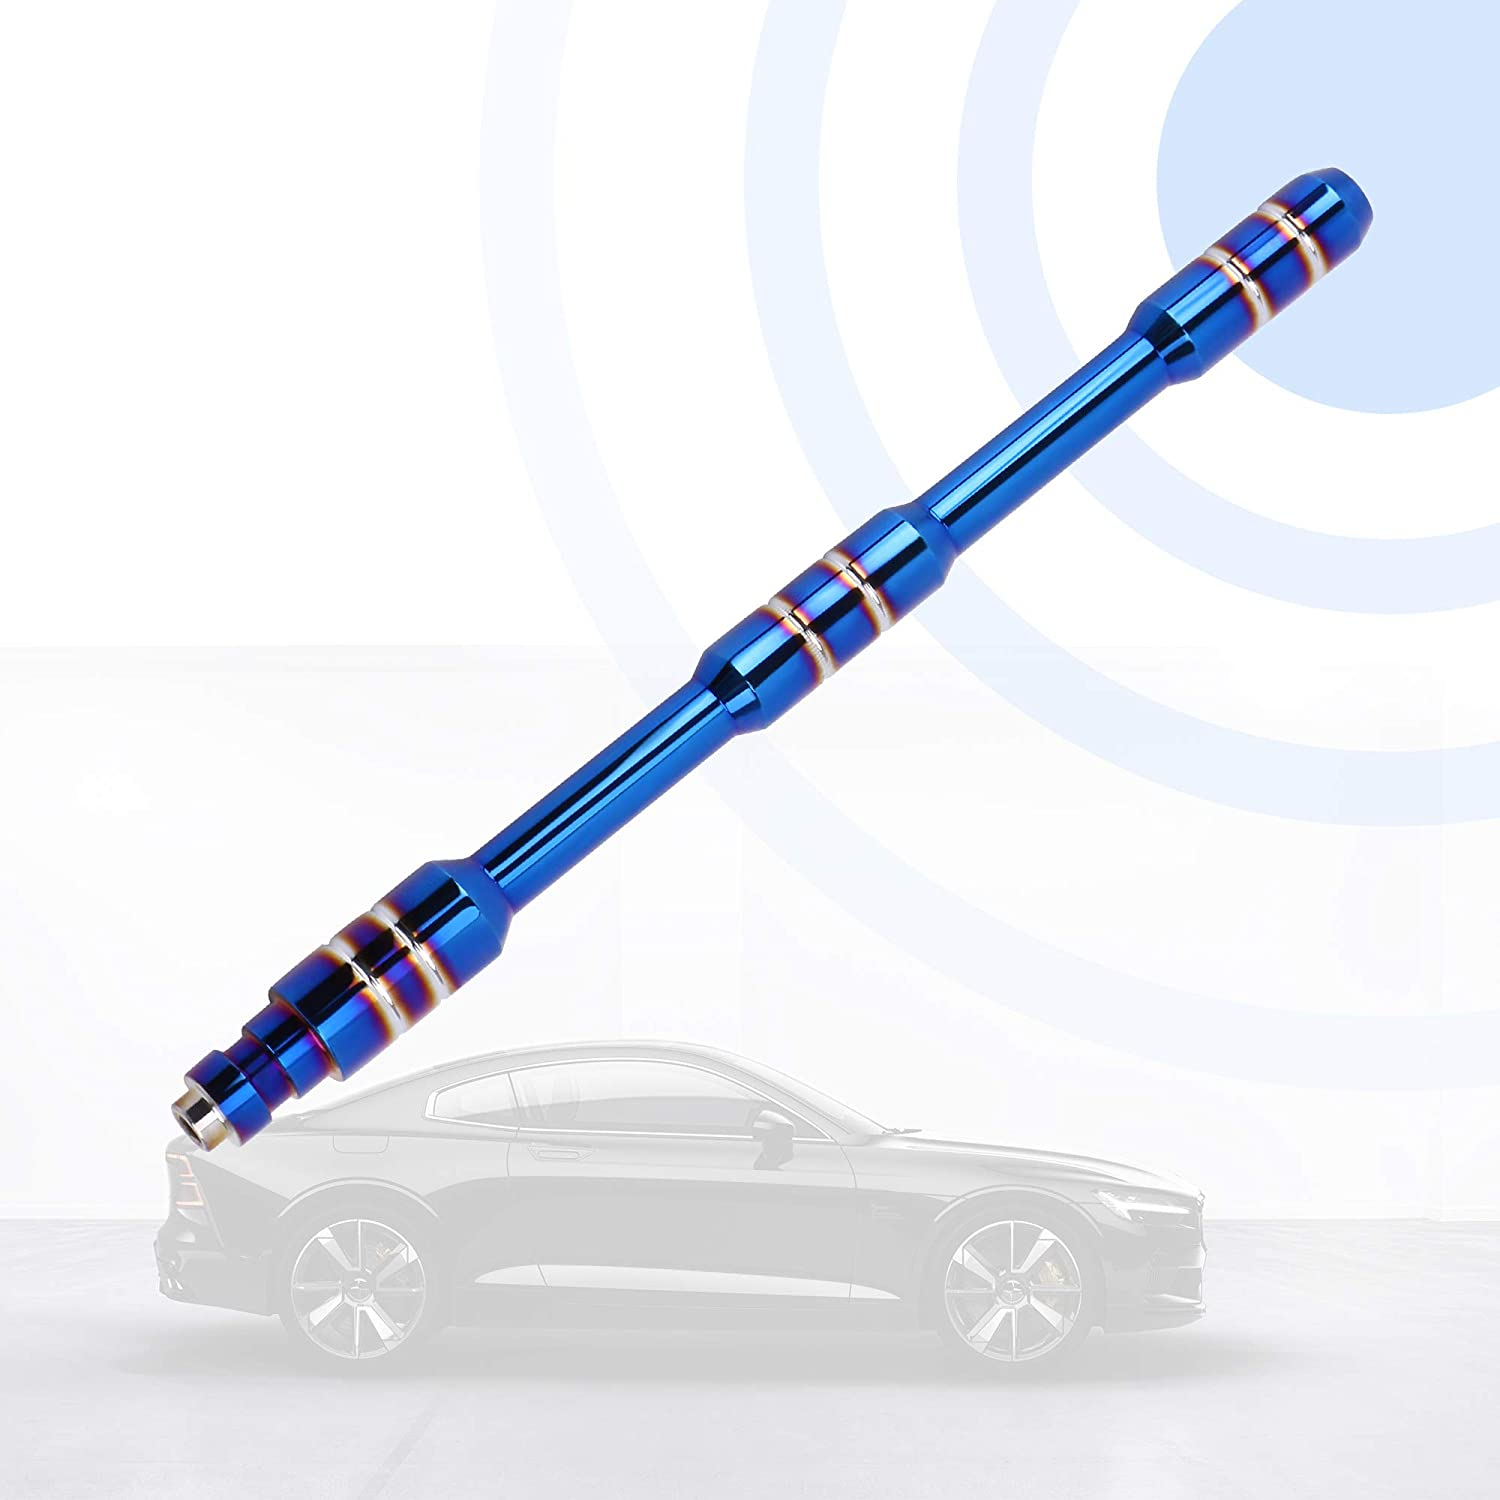 Discount mail order VOFONO 6.5 Inch Antenna Mast Car Replacement Credence Wash Safe